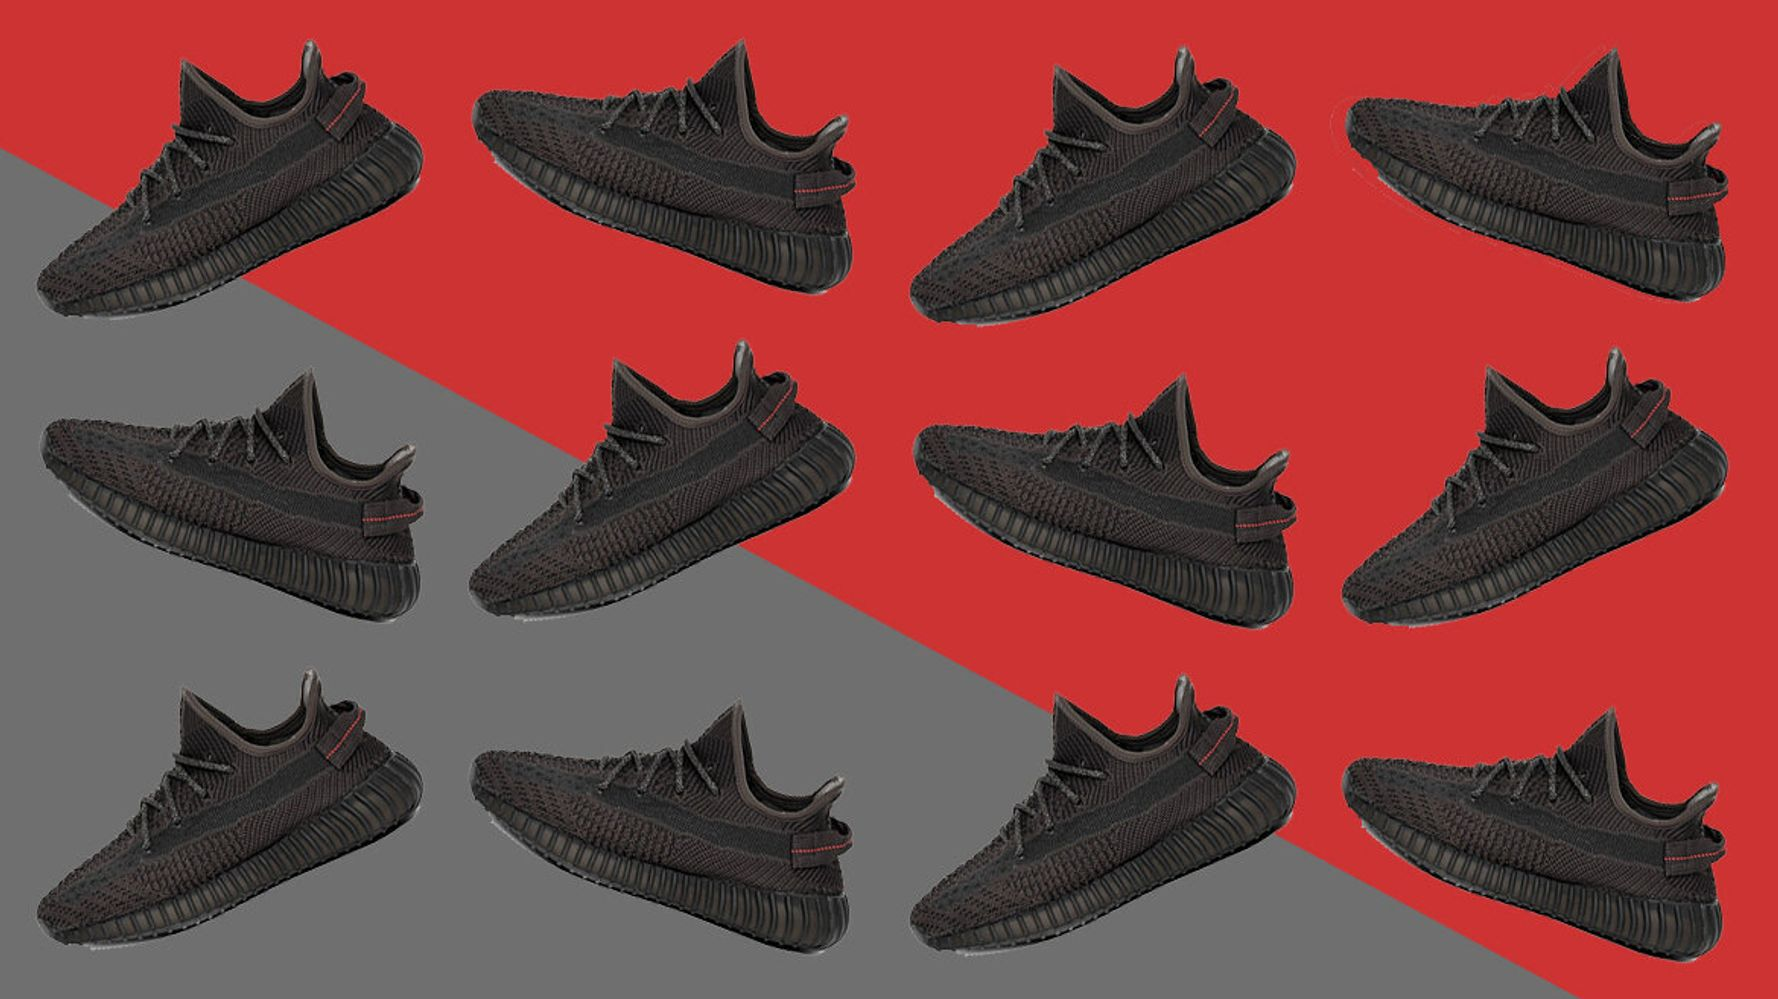 Adidas Yeezy Boost 350 V2 Sell Out Fast After Fans Camp